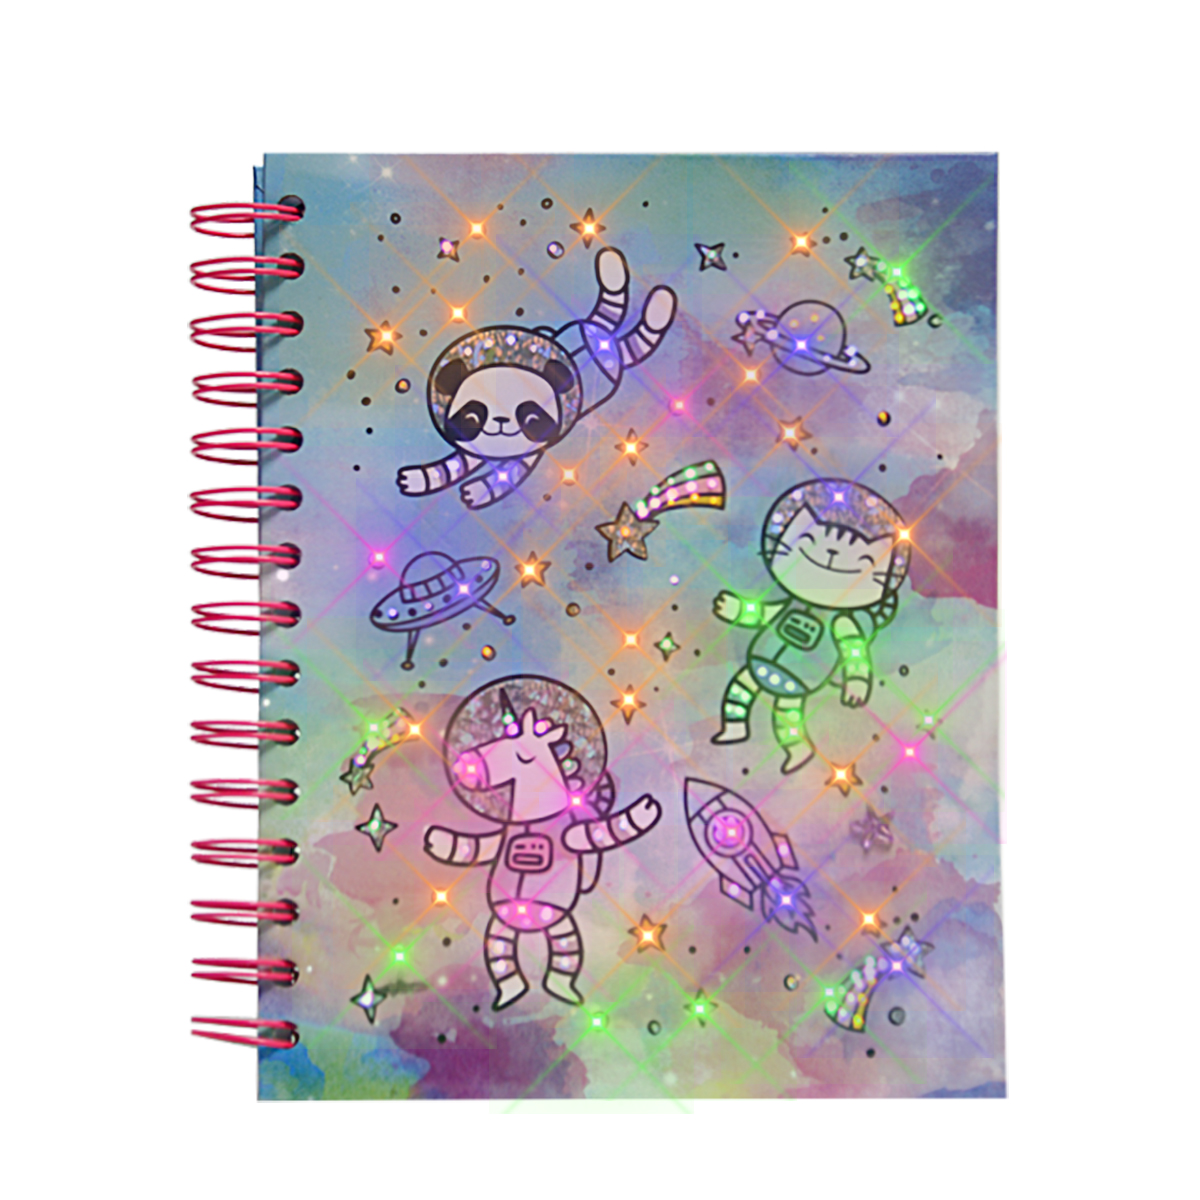 Goedkope custom pretty led licht dagboek Pasen journal a4 spiraal notebook voor gift